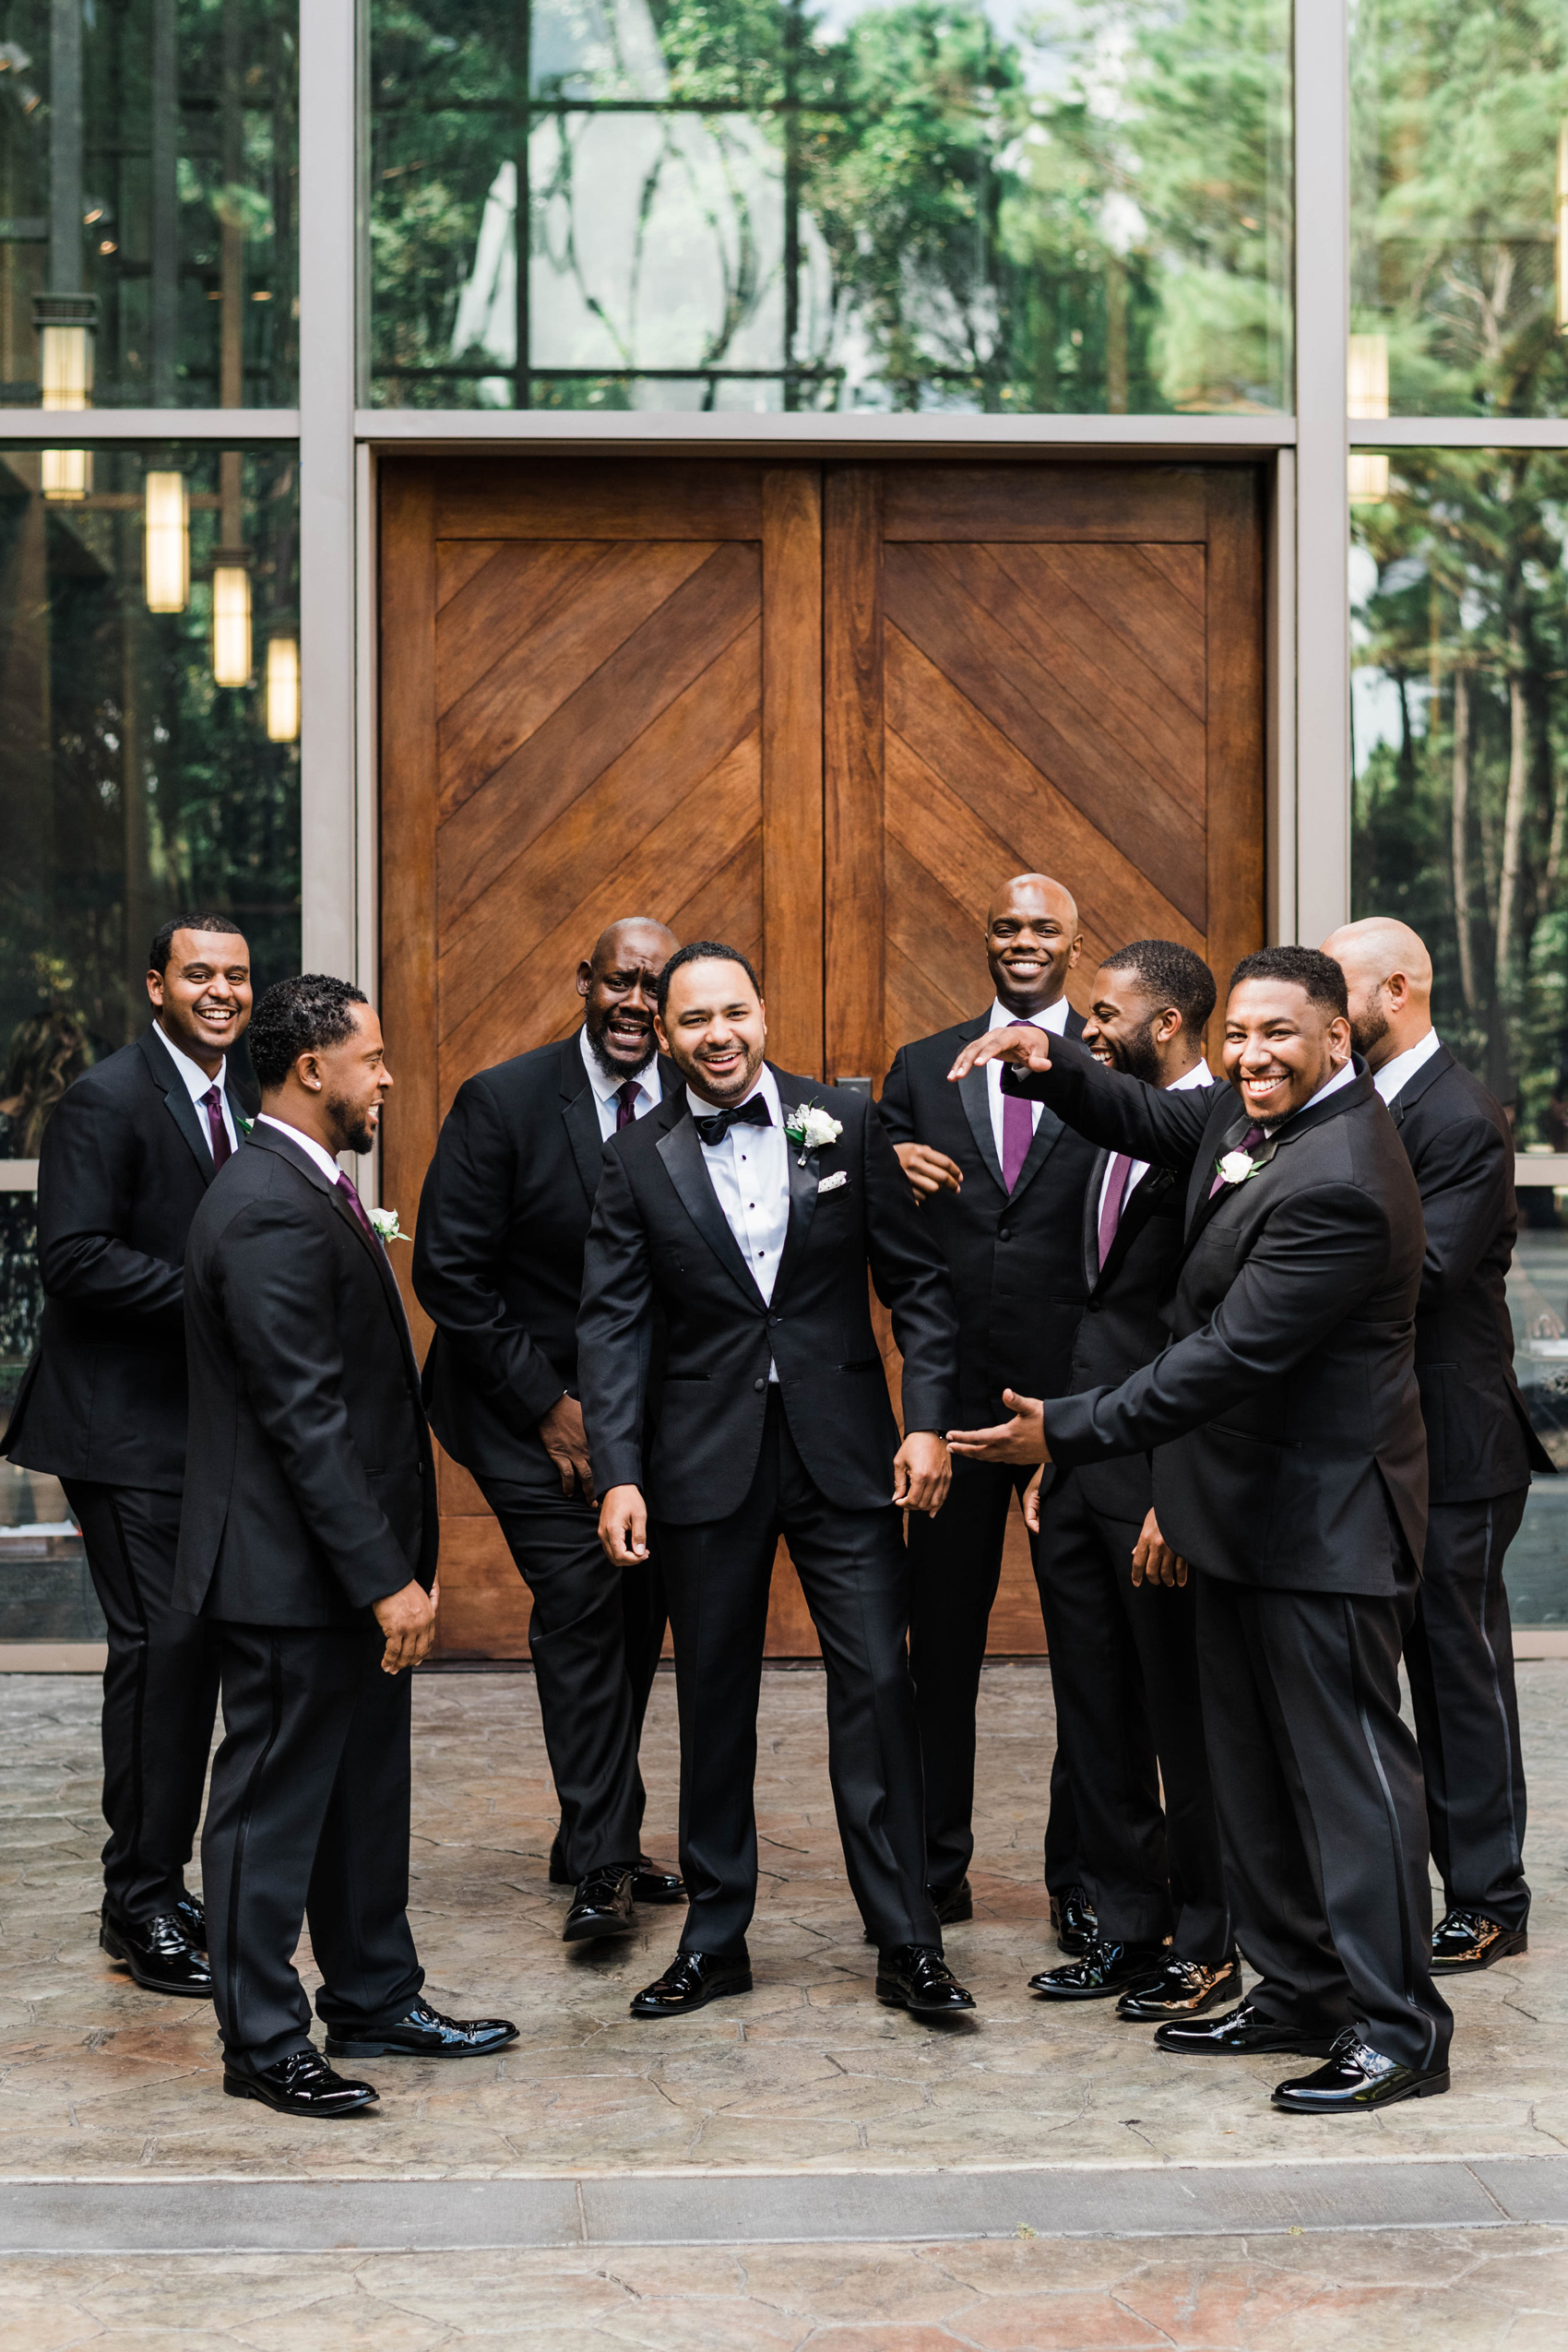 Does the Groom Have to Ask a Future Brother-in-Law to Be a Groomsman?